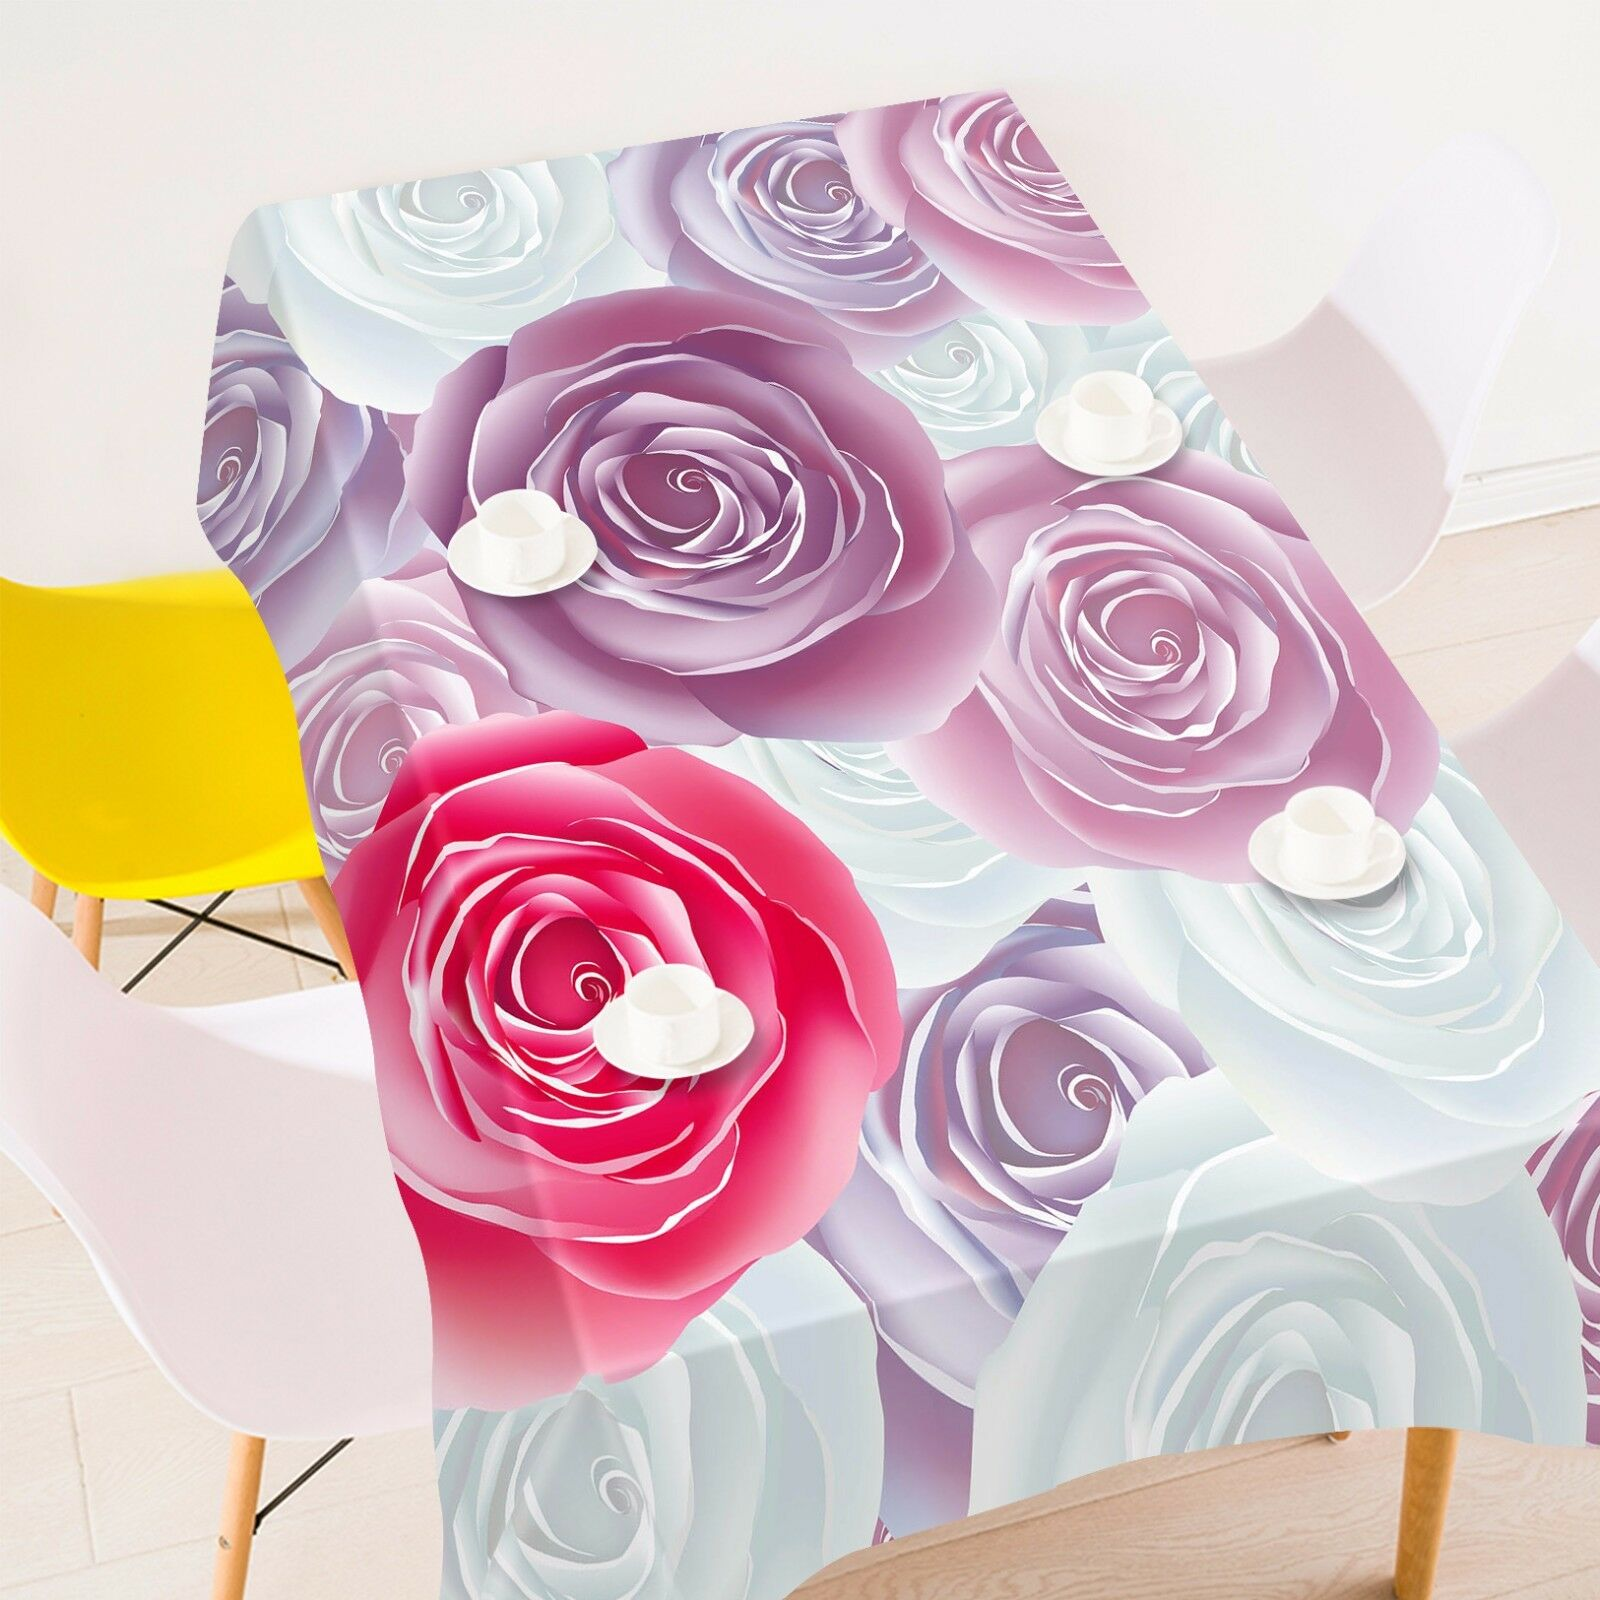 3D Flower 4227 Tablecloth Table Cover Cloth Birthday Party Event AJ WALLPAPER AU